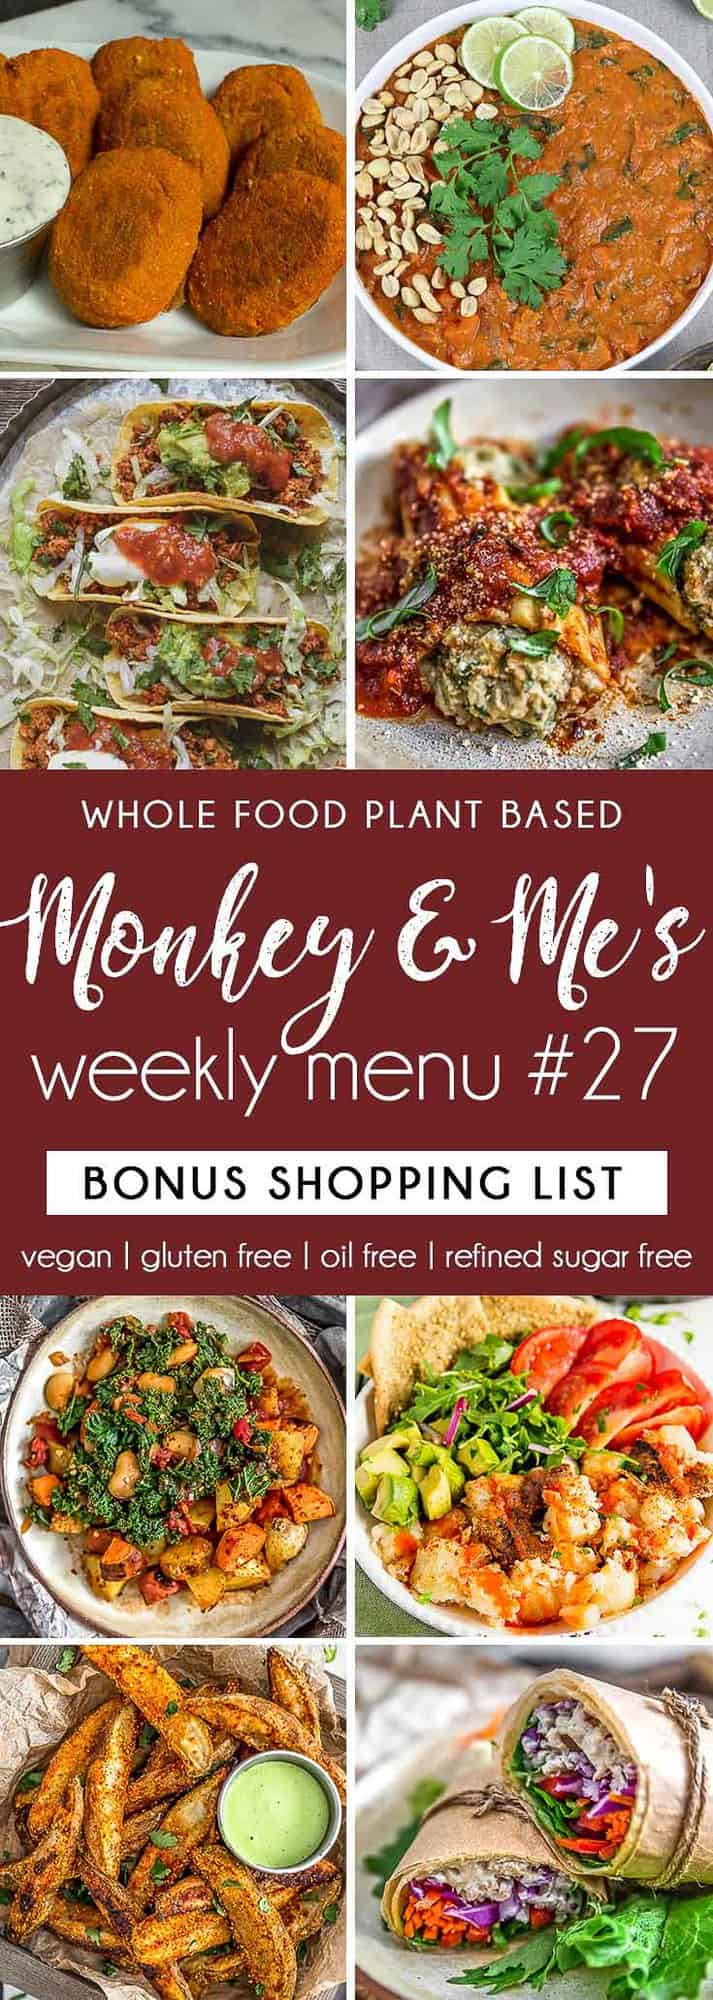 Monkey and Me's Menu 27 featuring 8 recipes